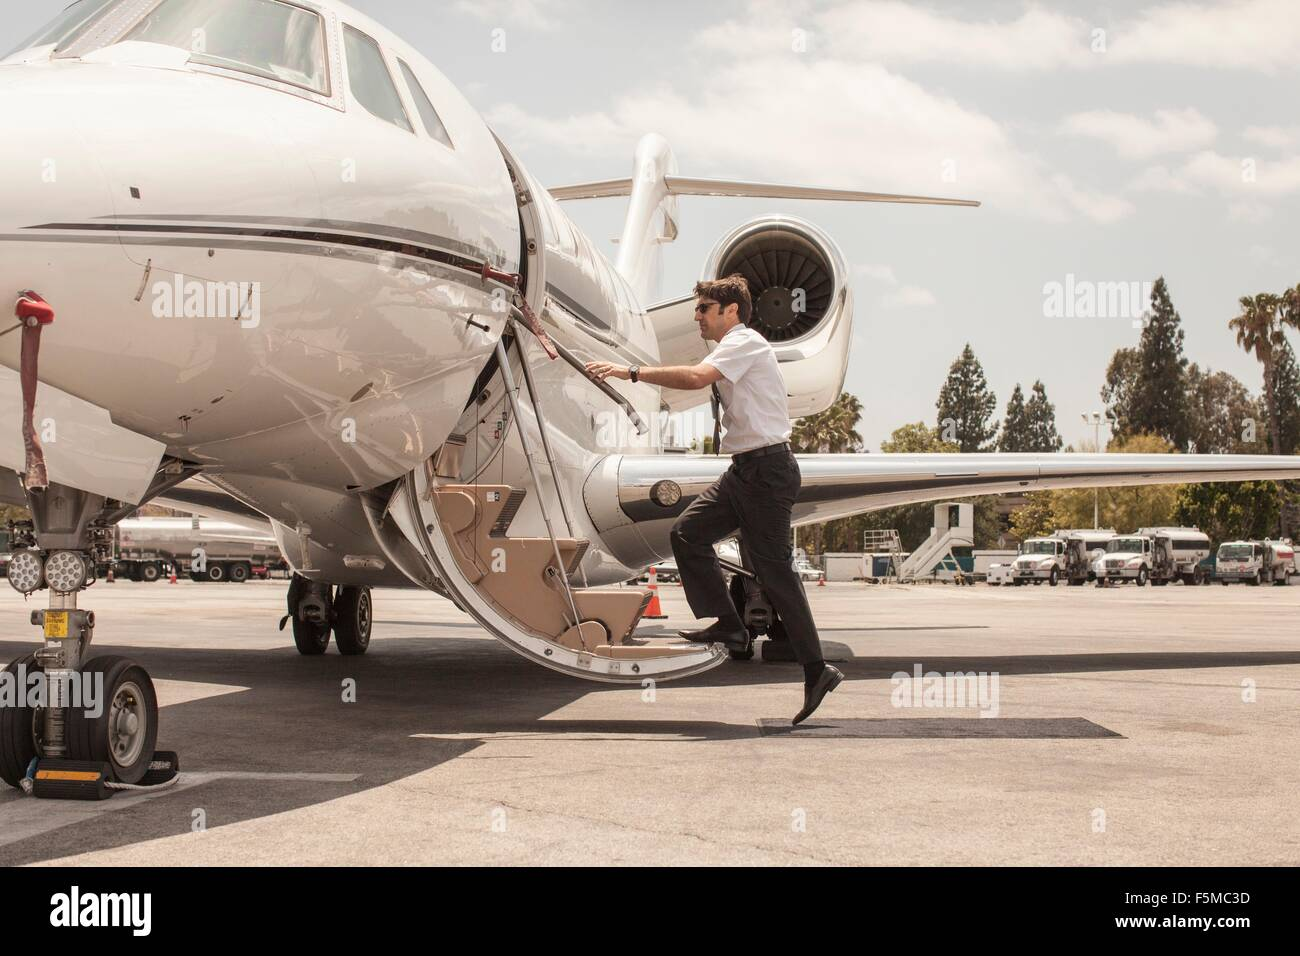 Male private jet pilot boarding plane at airport - Stock Image